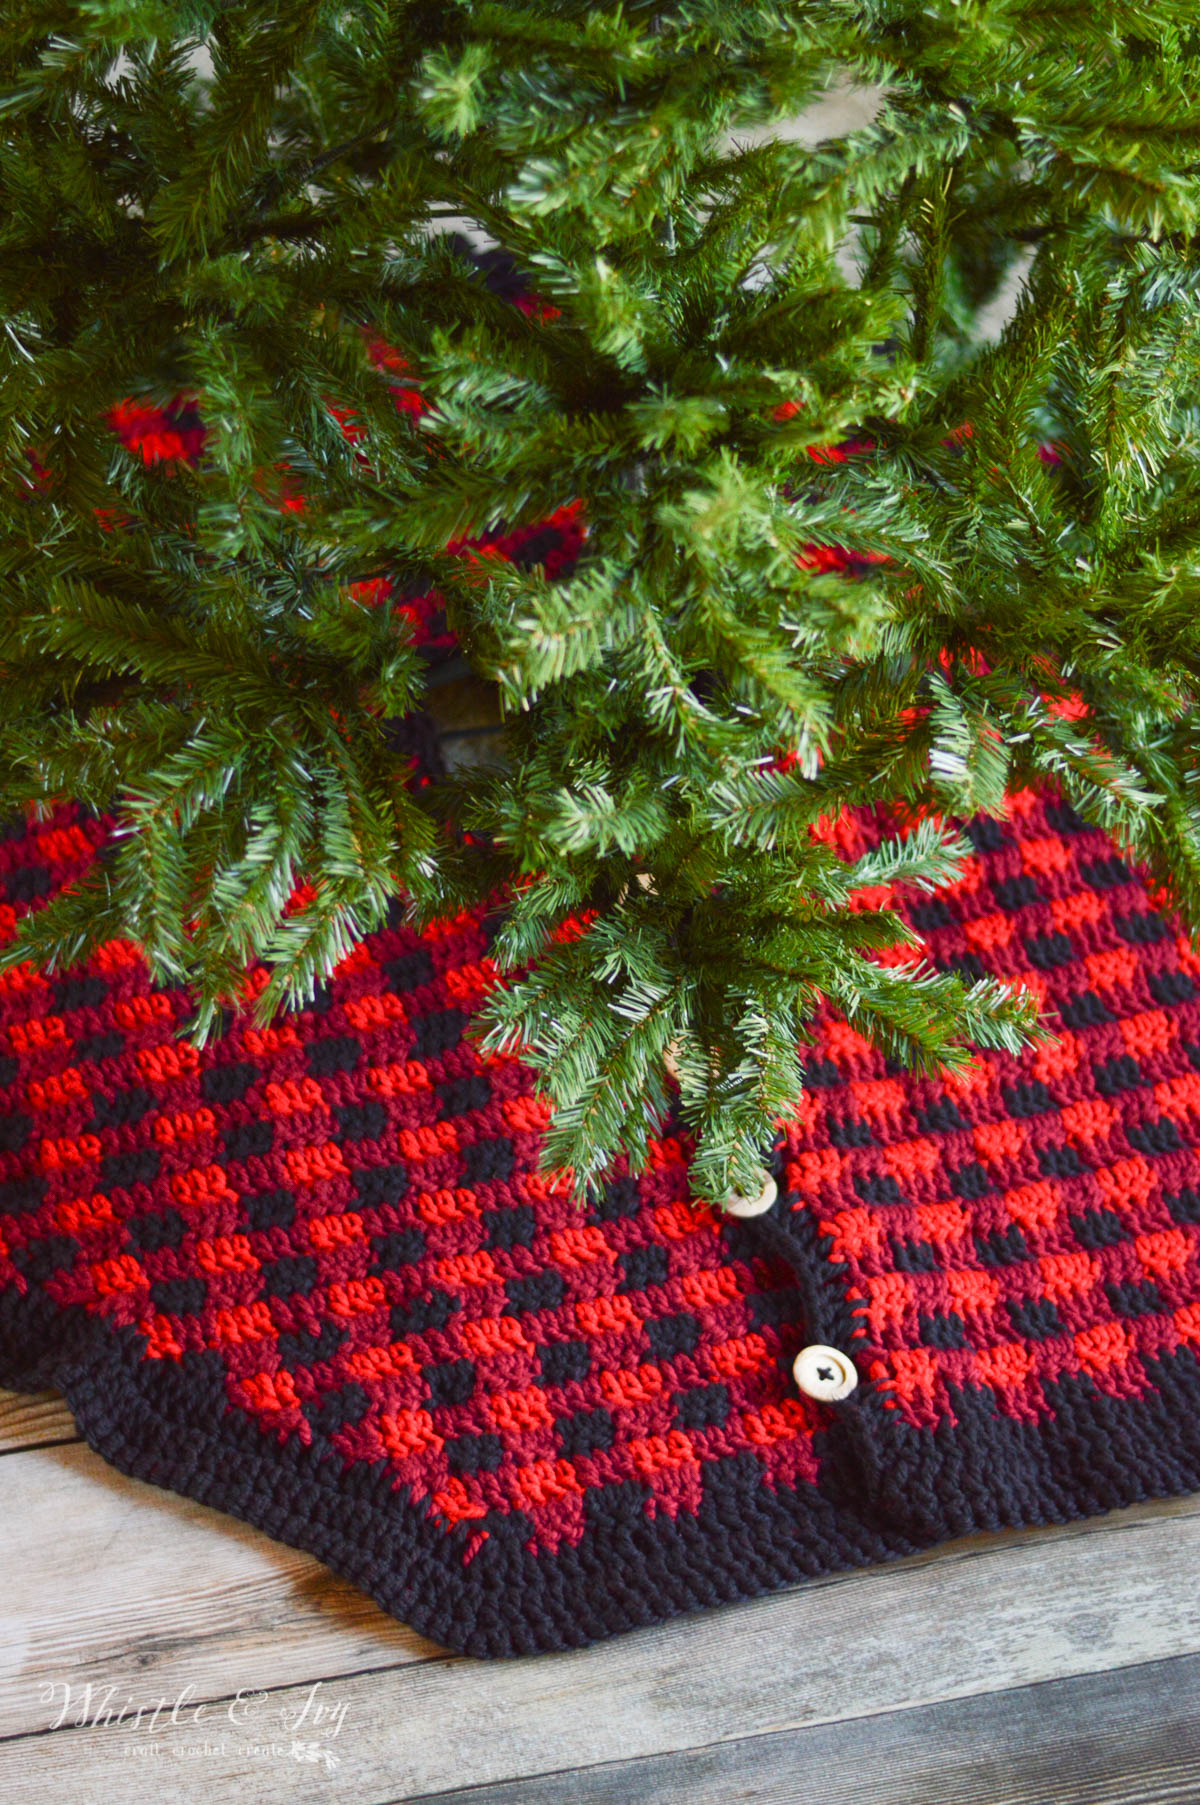 Crochet Plaid Tree Skirt Free Crochet Pattern Whistle And Ivy